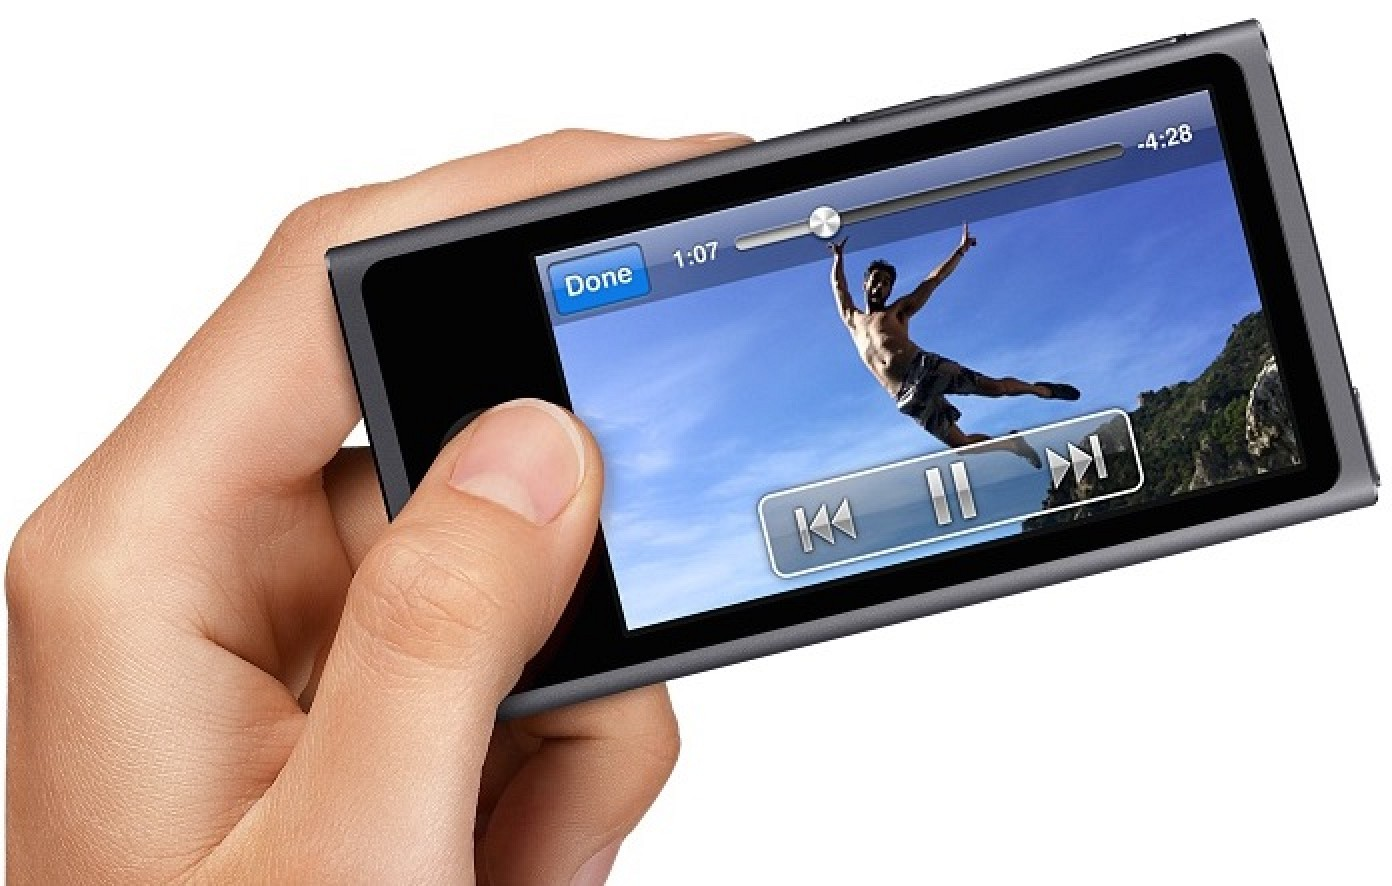 Apple Release New iPod Touch, Nano and Shuffle